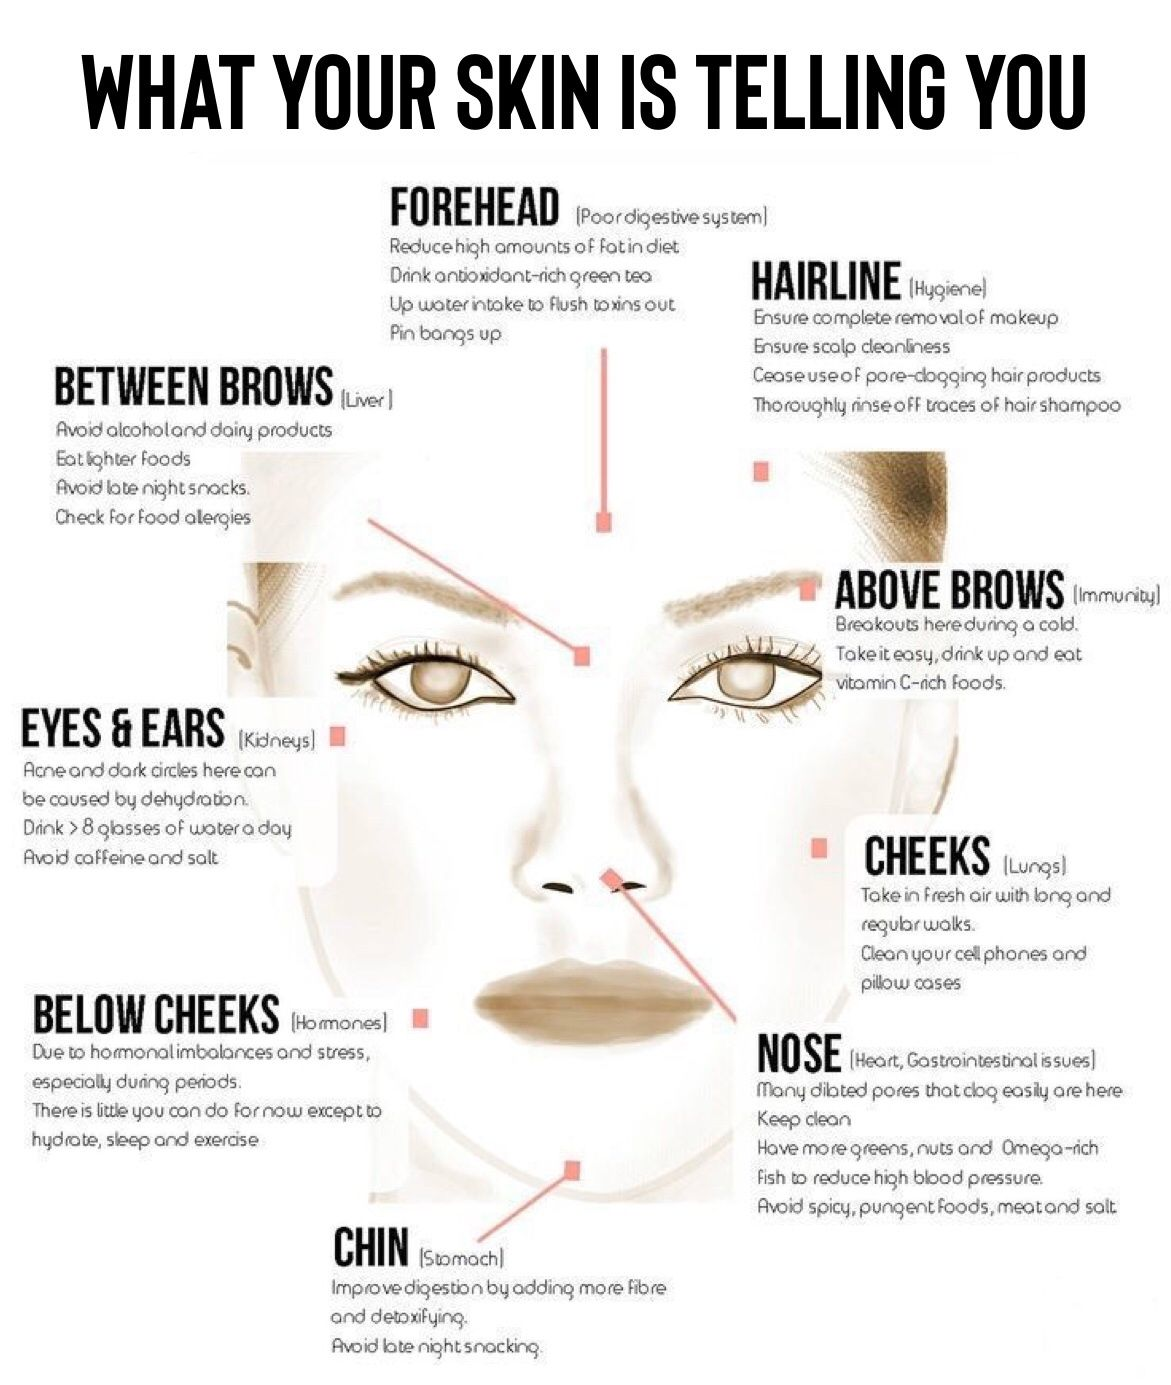 Good Morning November Is Nationalhealthyskinmonth Healthy Skin Starts From The Inside And How Sensitive Skin Care Anti Aging Skin Products Skin Care Brands